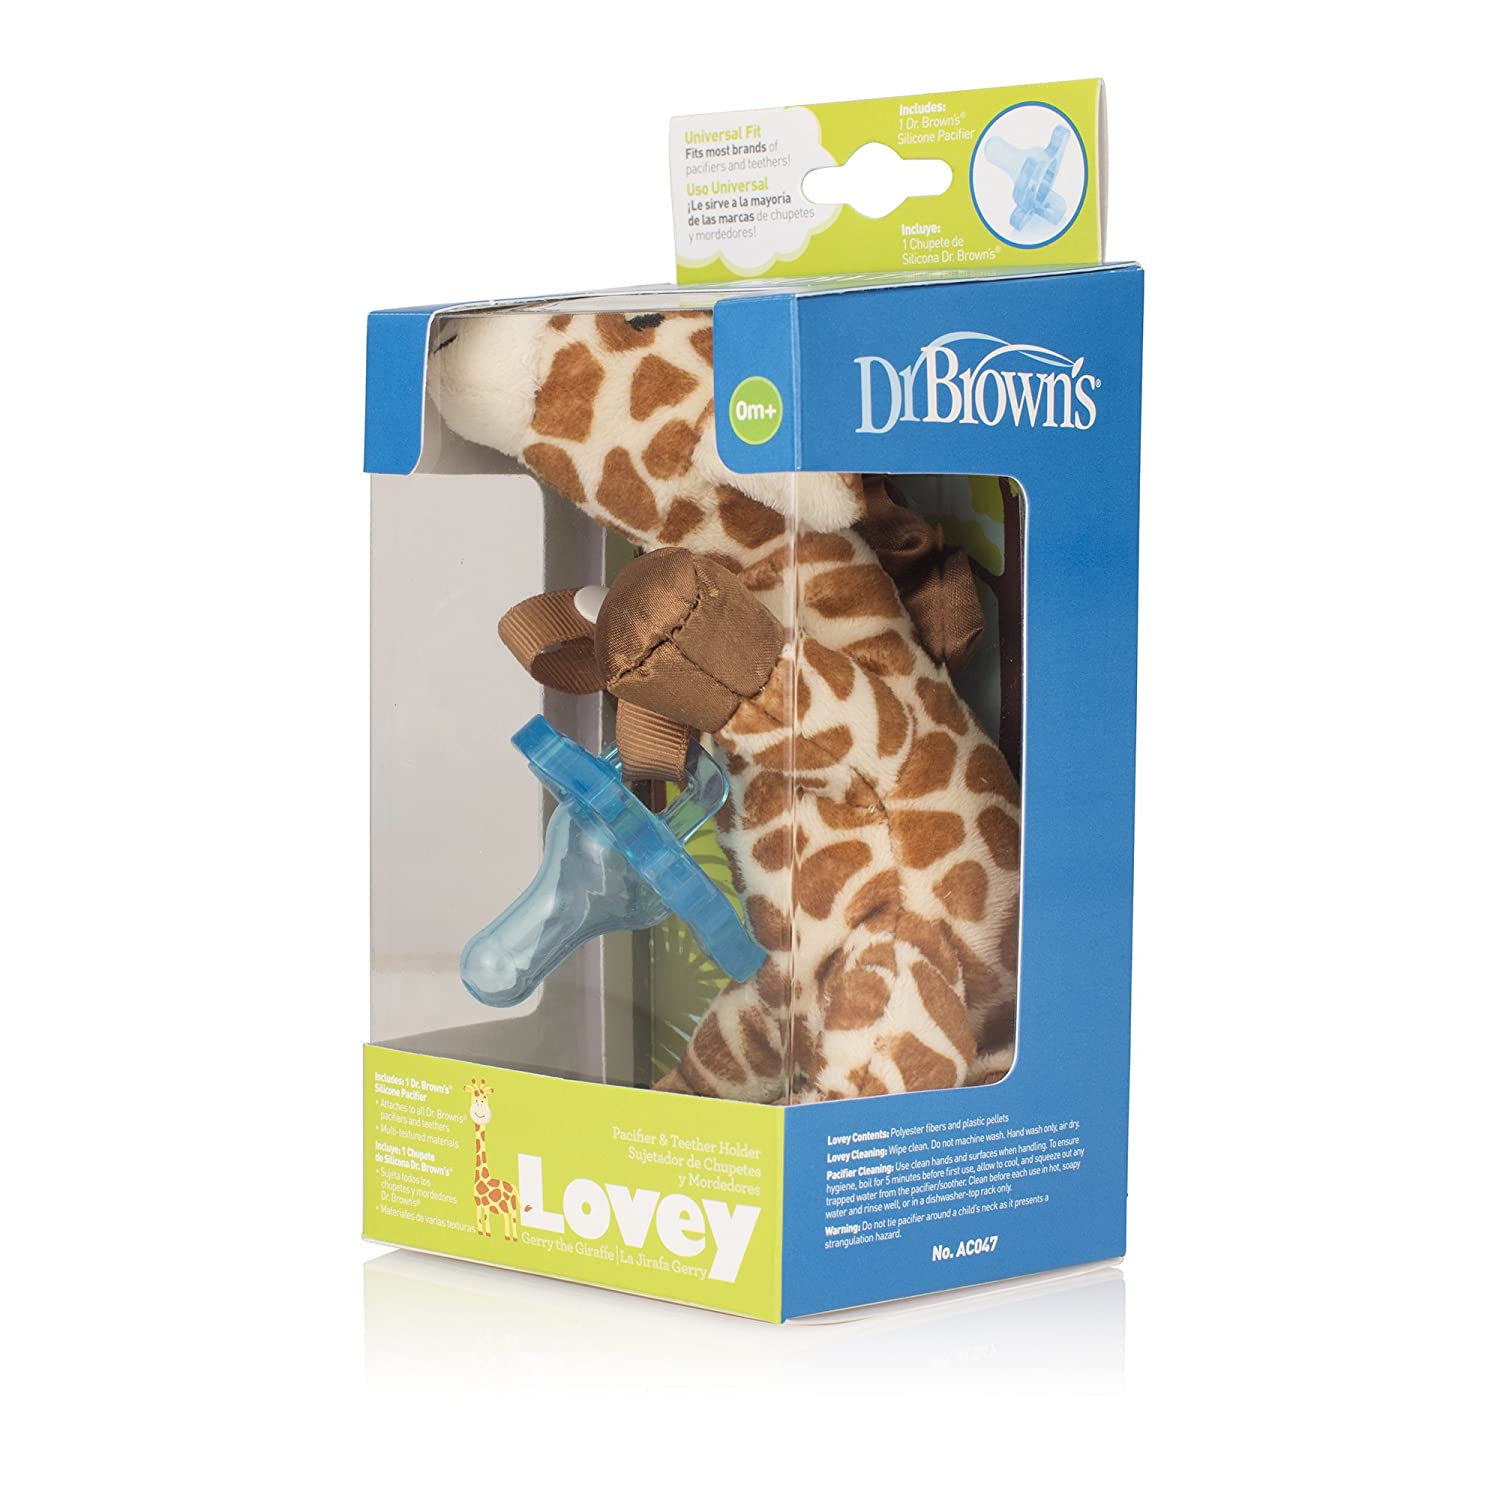 Amazon.com : Dr. Browns Lovey Pacifier and Teether Holder, 0 Months Plus, Giraffe with Blue Pacifier : Baby